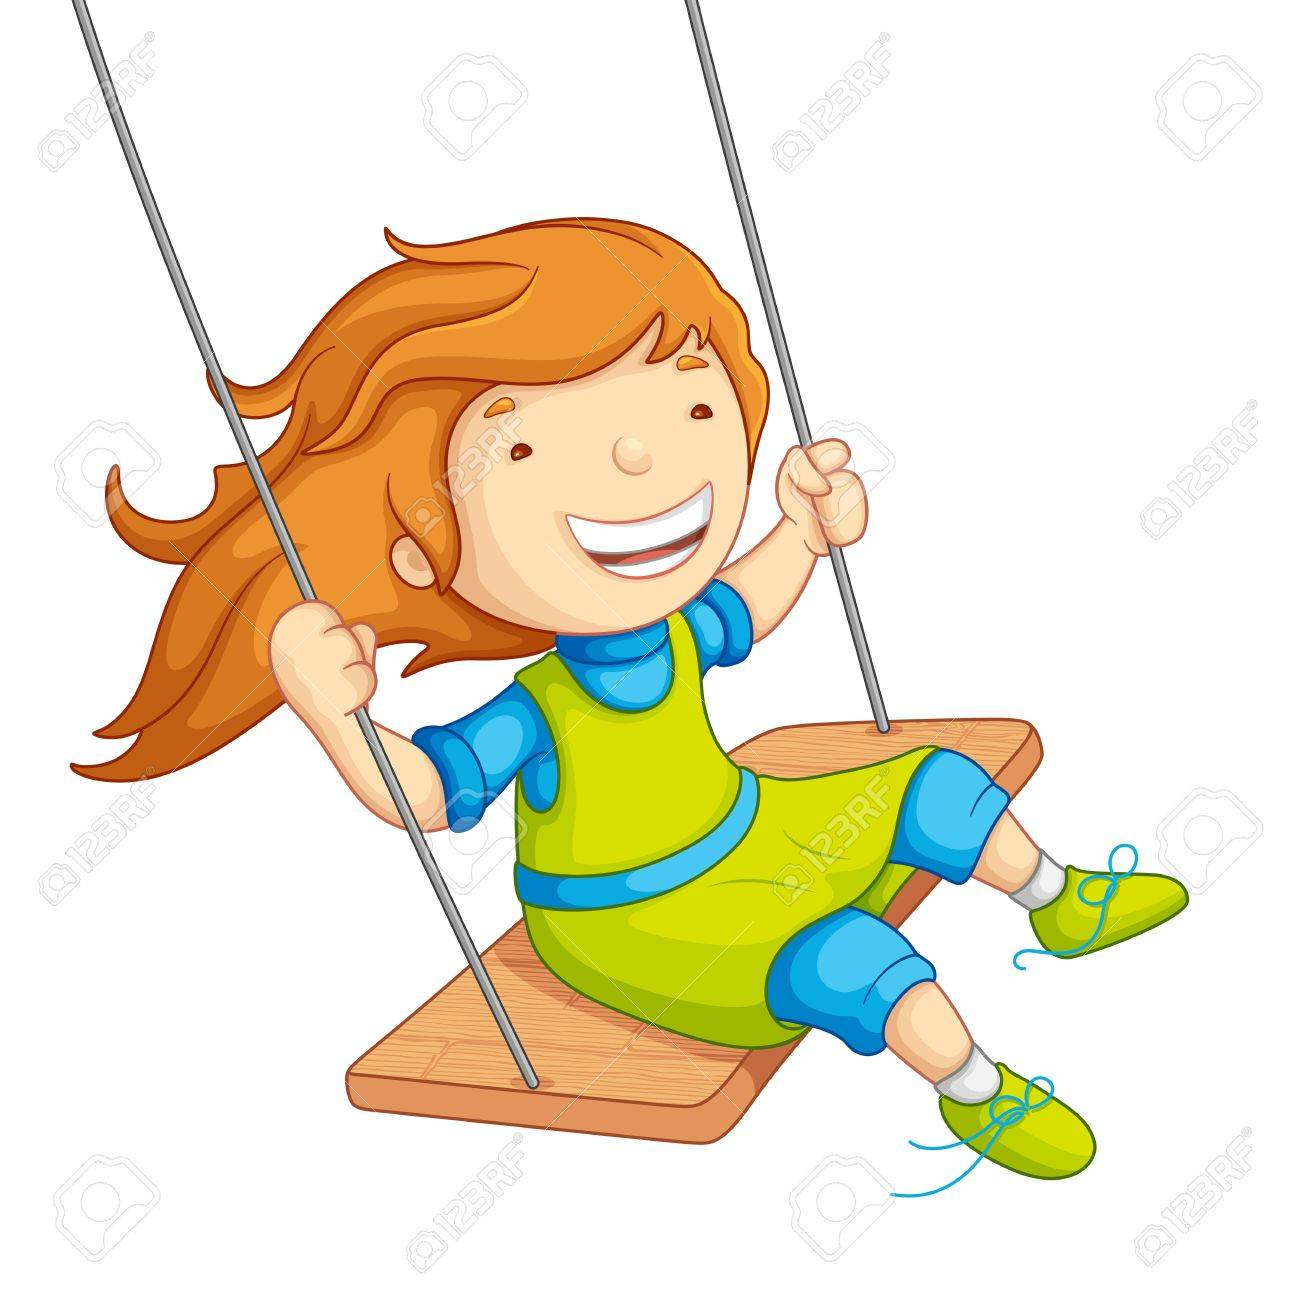 Girl on swing clipart 2 » Clipart Station.